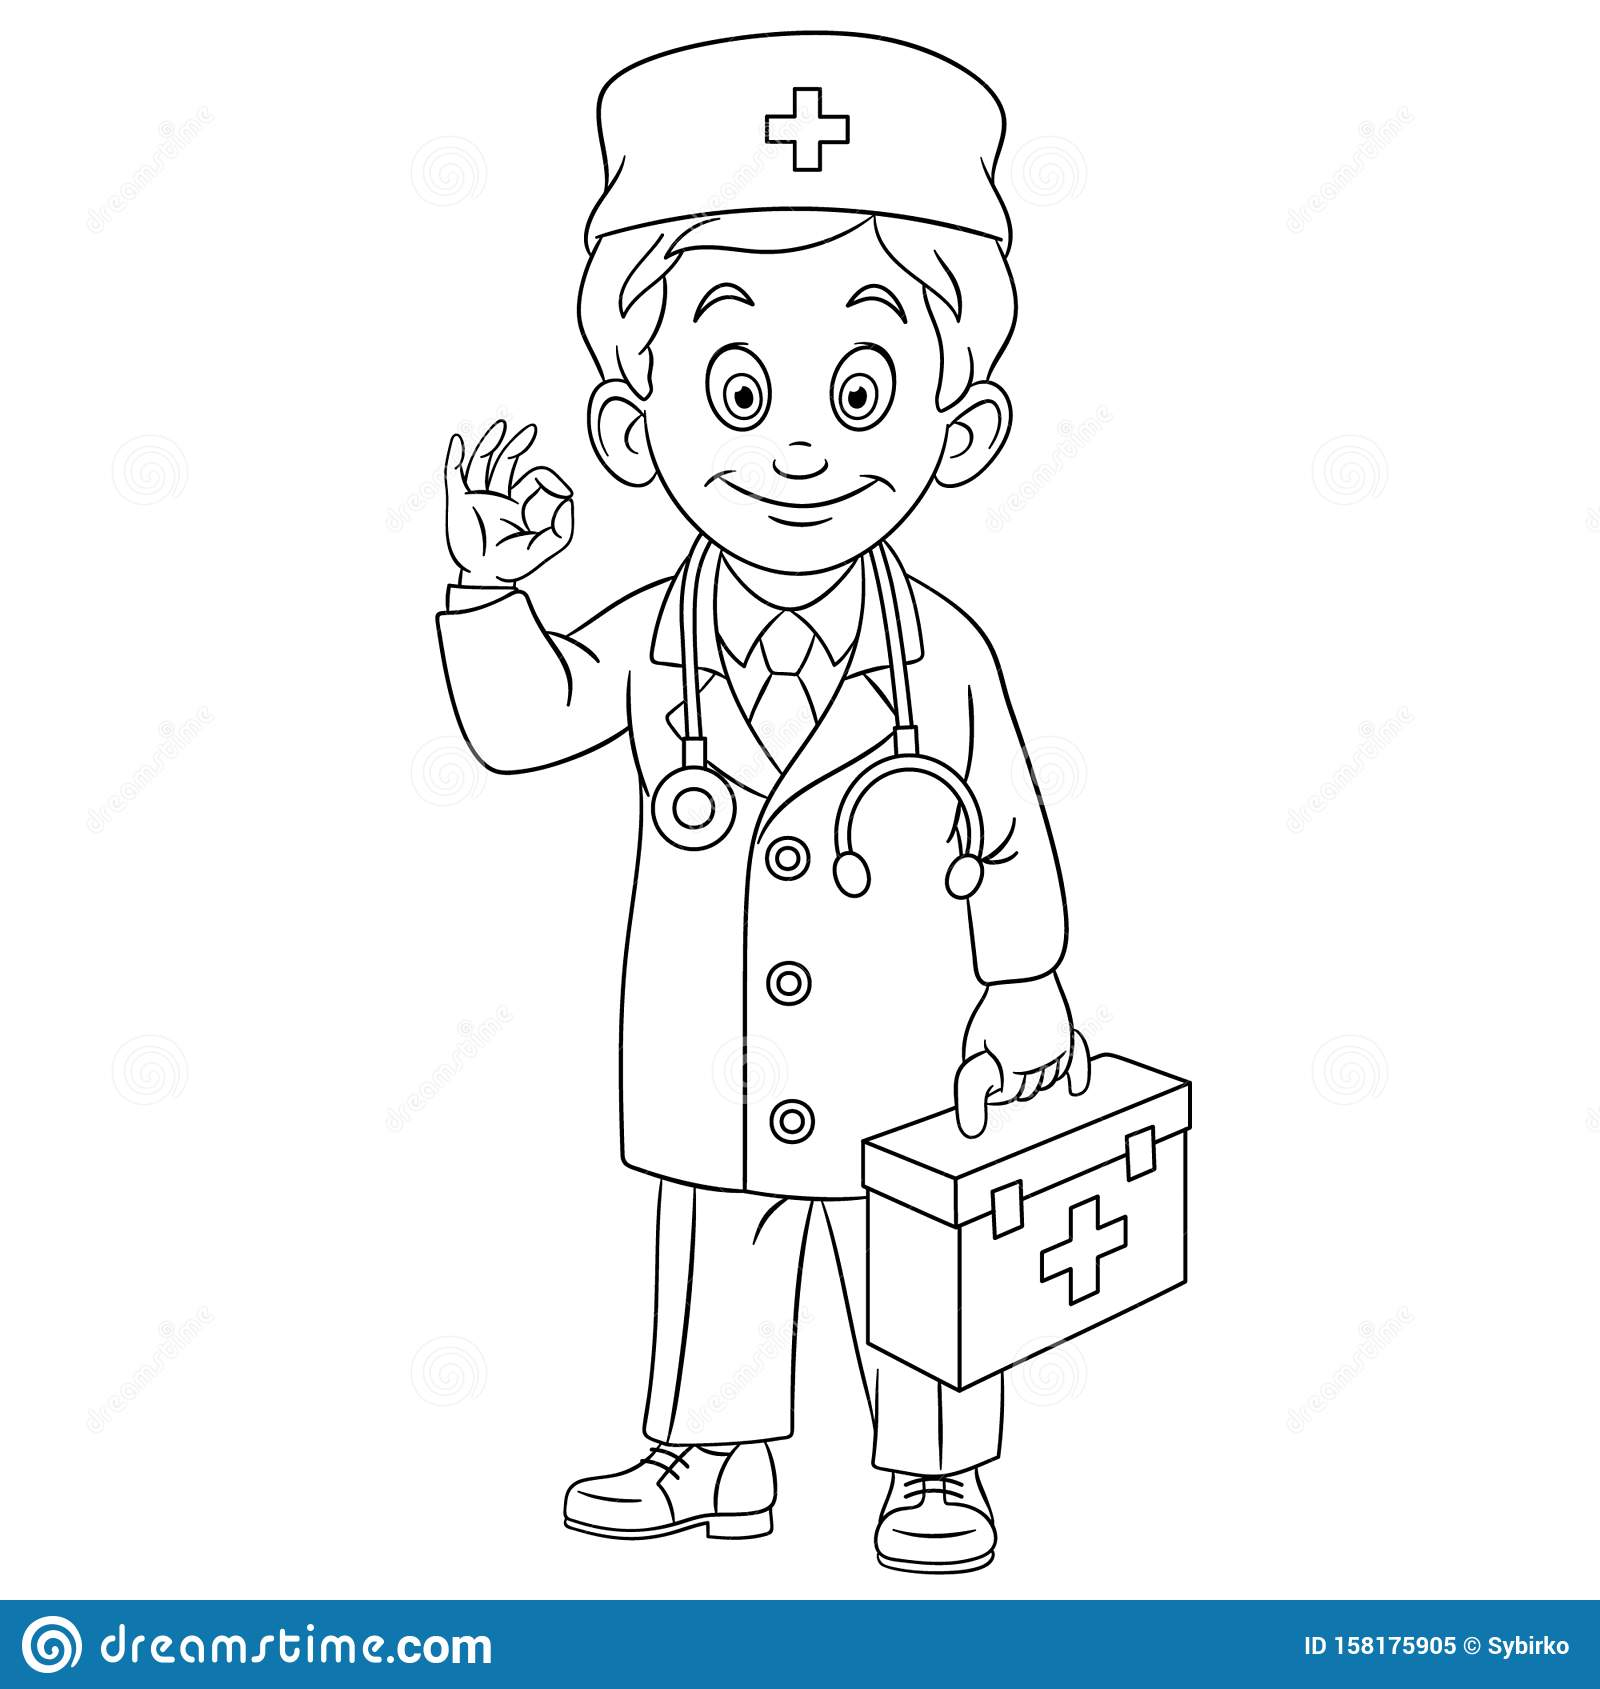 Doctor Coloring Book Equipment Stock Illustrations 51 Doctor Coloring Book Equipment Stock Illustrations Vectors Clipart Dreamstime